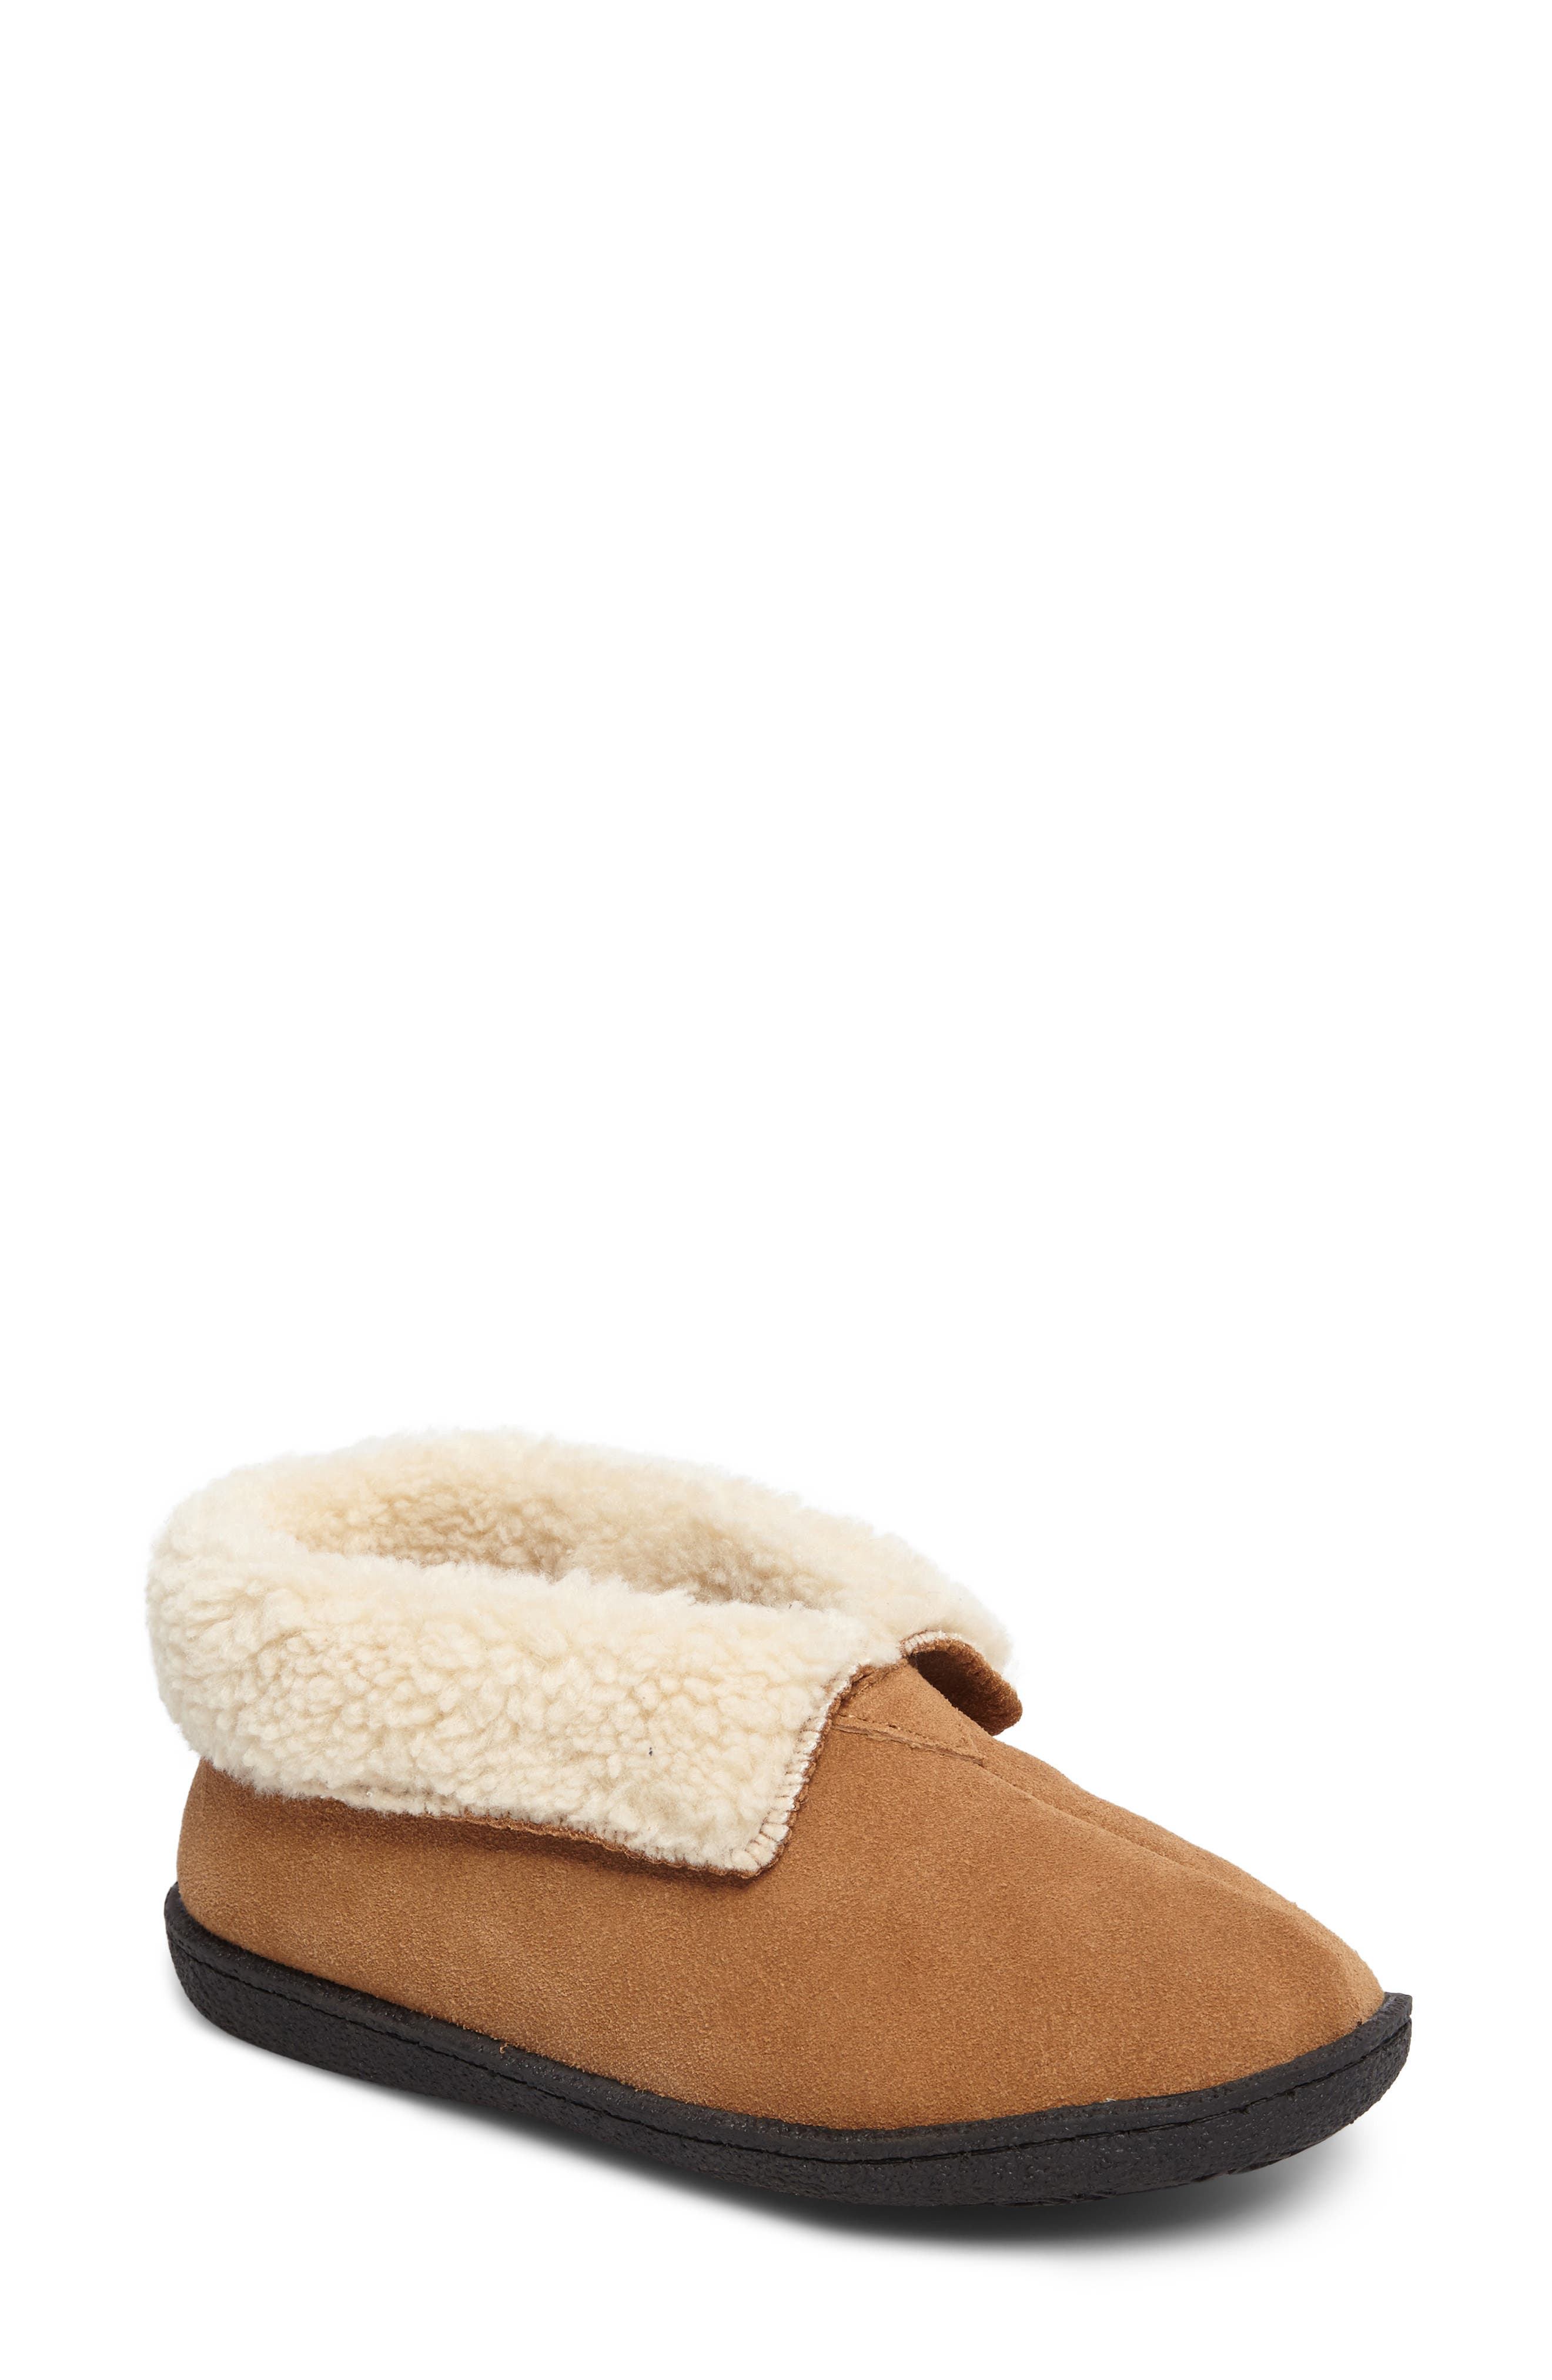 Lodge II Slipper,                         Main,                         color, Chestnut